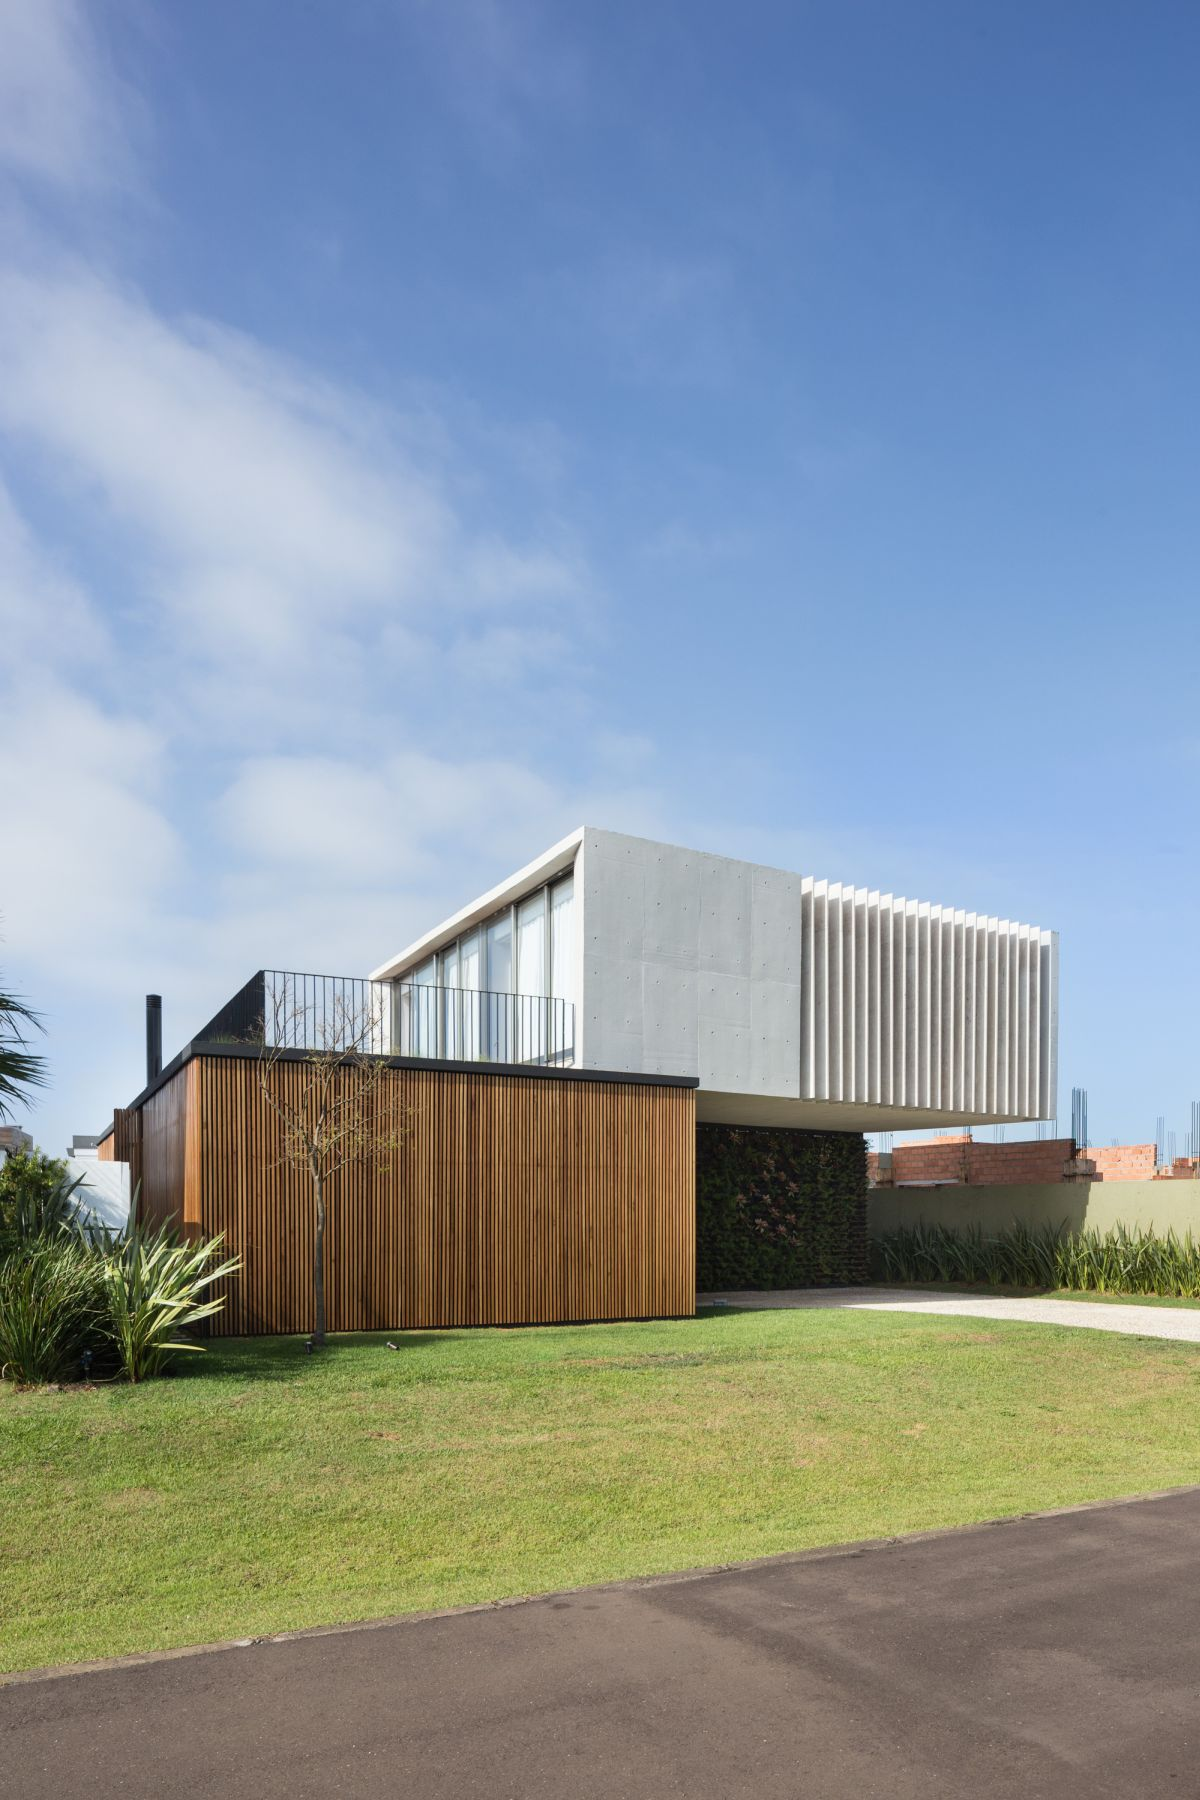 Angle view of Enseada House in Brazil